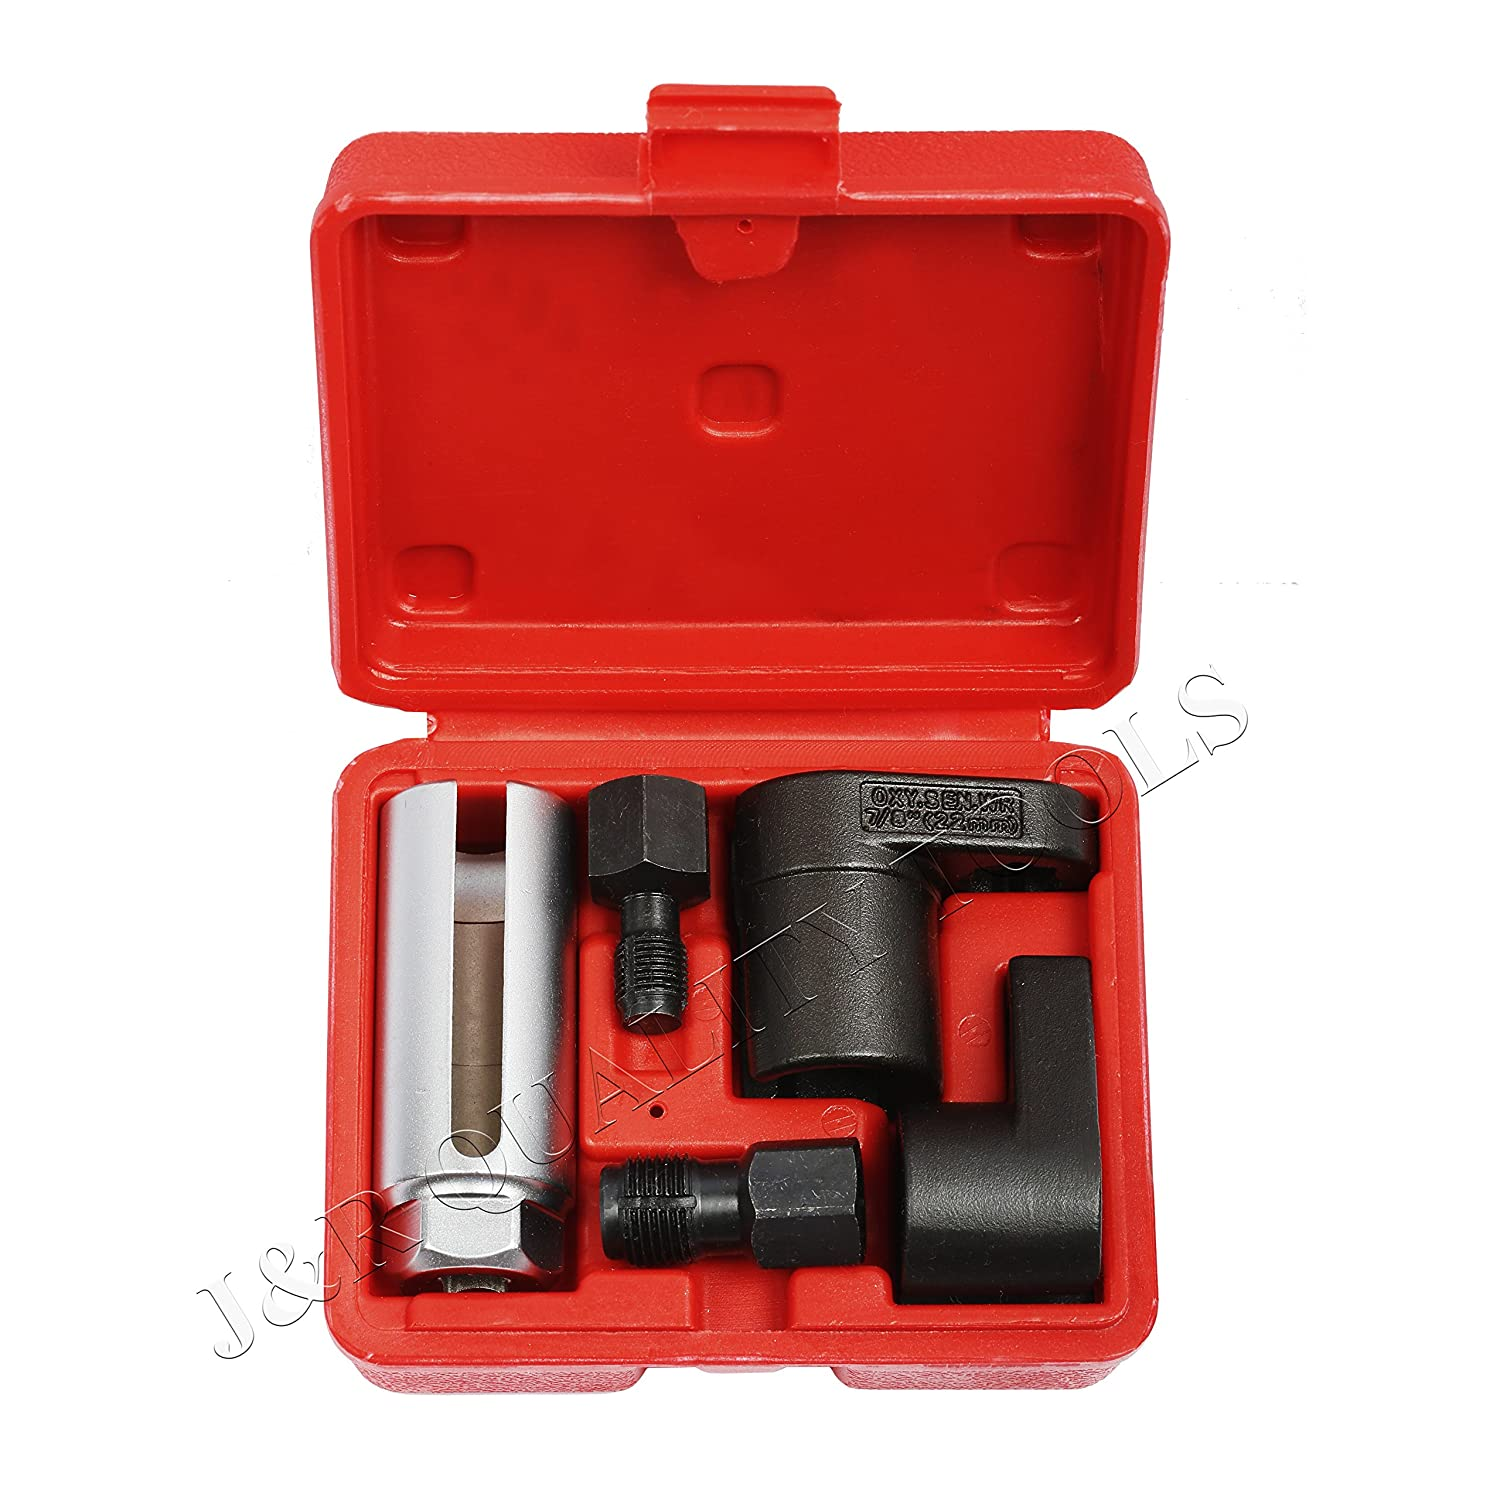 5Pc Set Oxygen Sensor Socket Wrench and Thread Chaser Set J/&R Quality Tools